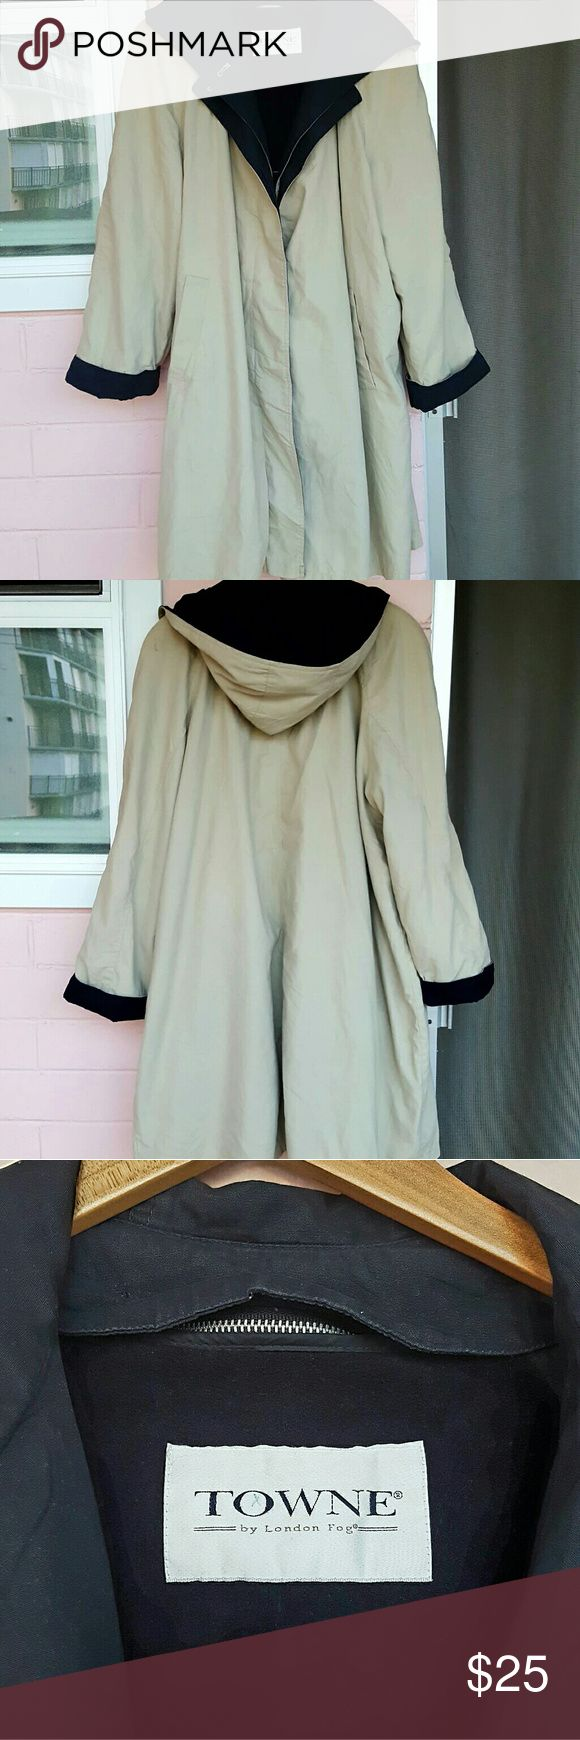 TAN LONDON FOG TRENCH COAT *tan hooded trench coat *size 20 *removable inside liner (see pic 4) *might be missing a button *couple of marks - can be removed with a good clean  bought on impulse at a sample sale in NYC and grabbed the first coat I saw before checking the size since these were flying off the rack! Looking to get my money back. London Fog Jackets & Coats Trench Coats